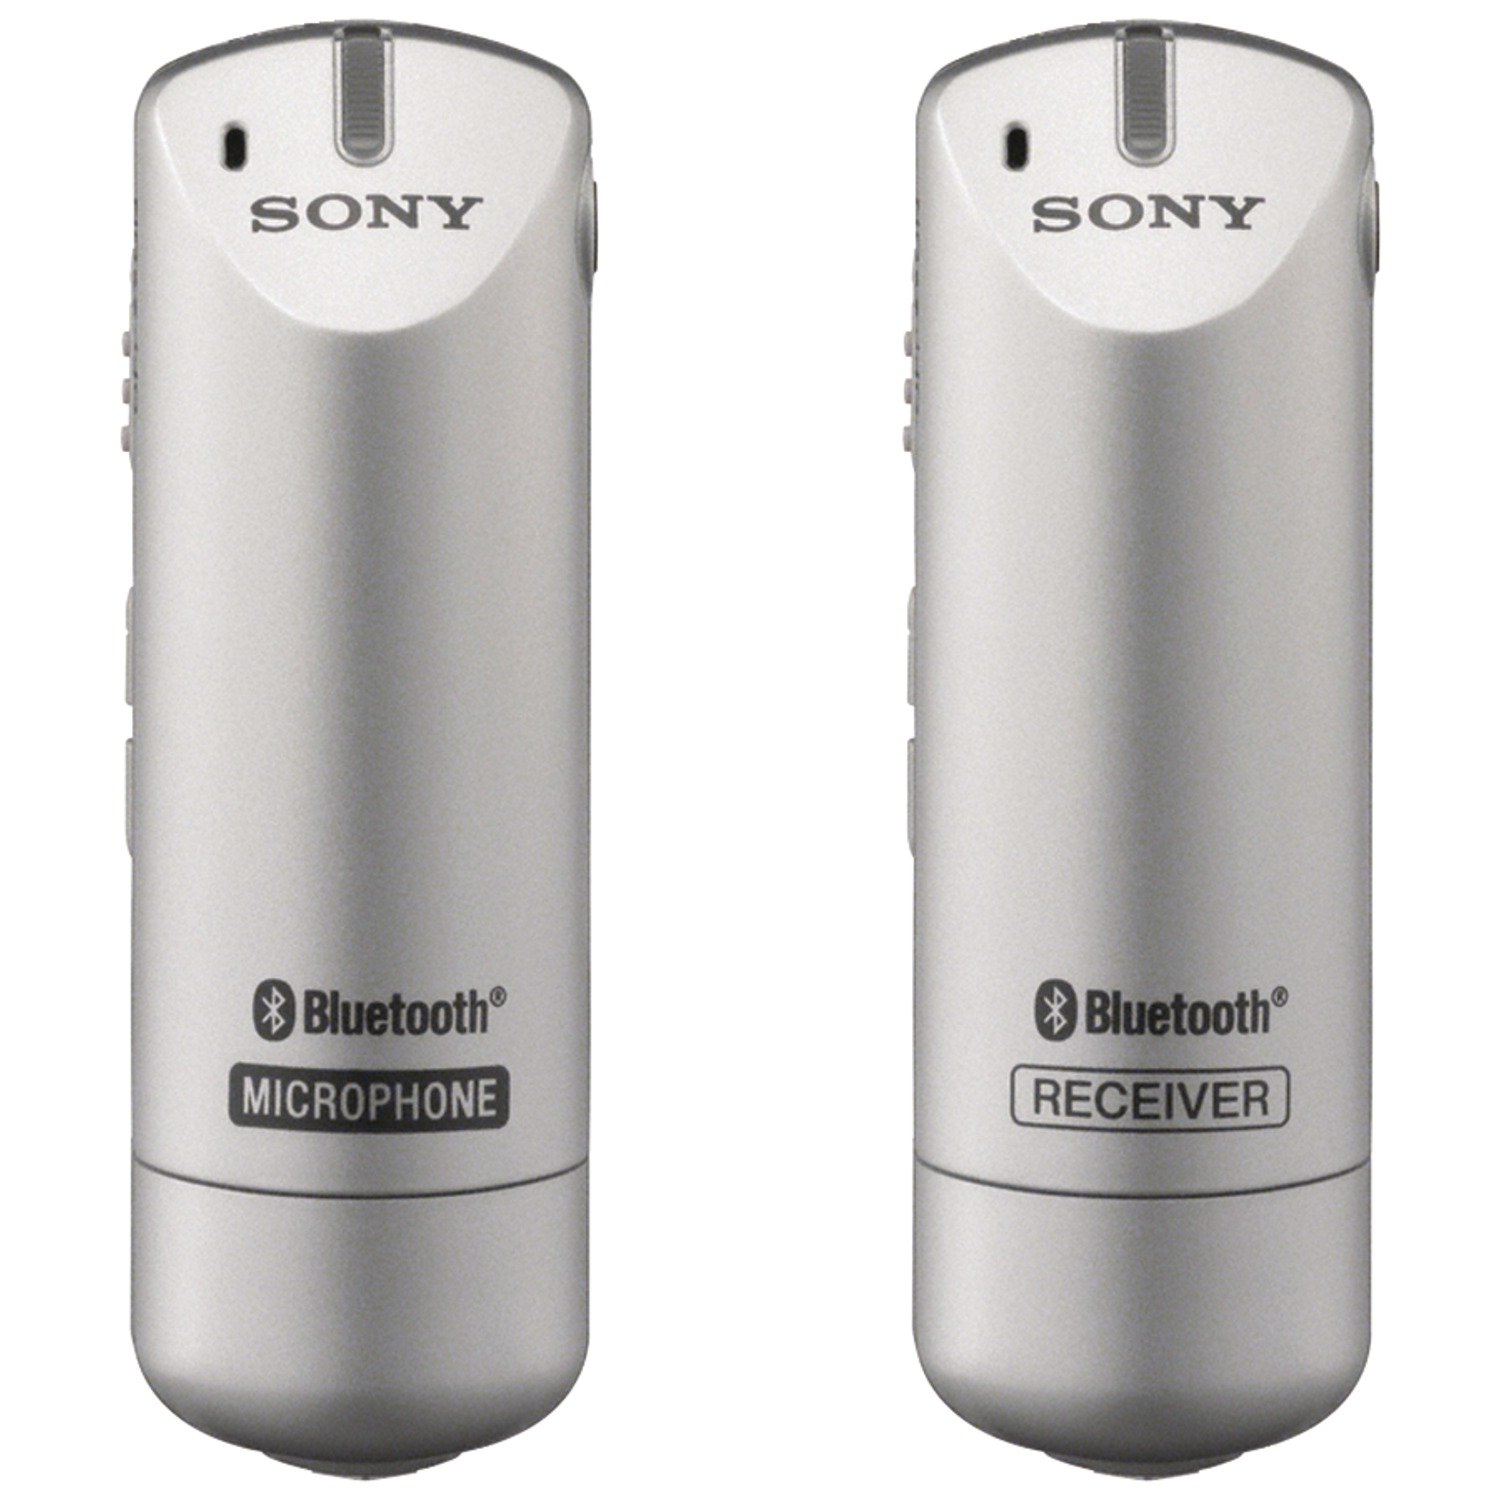 Sony ECM-AW3 Wireless Microphone - Silver (Discontinued by Manufacturer)